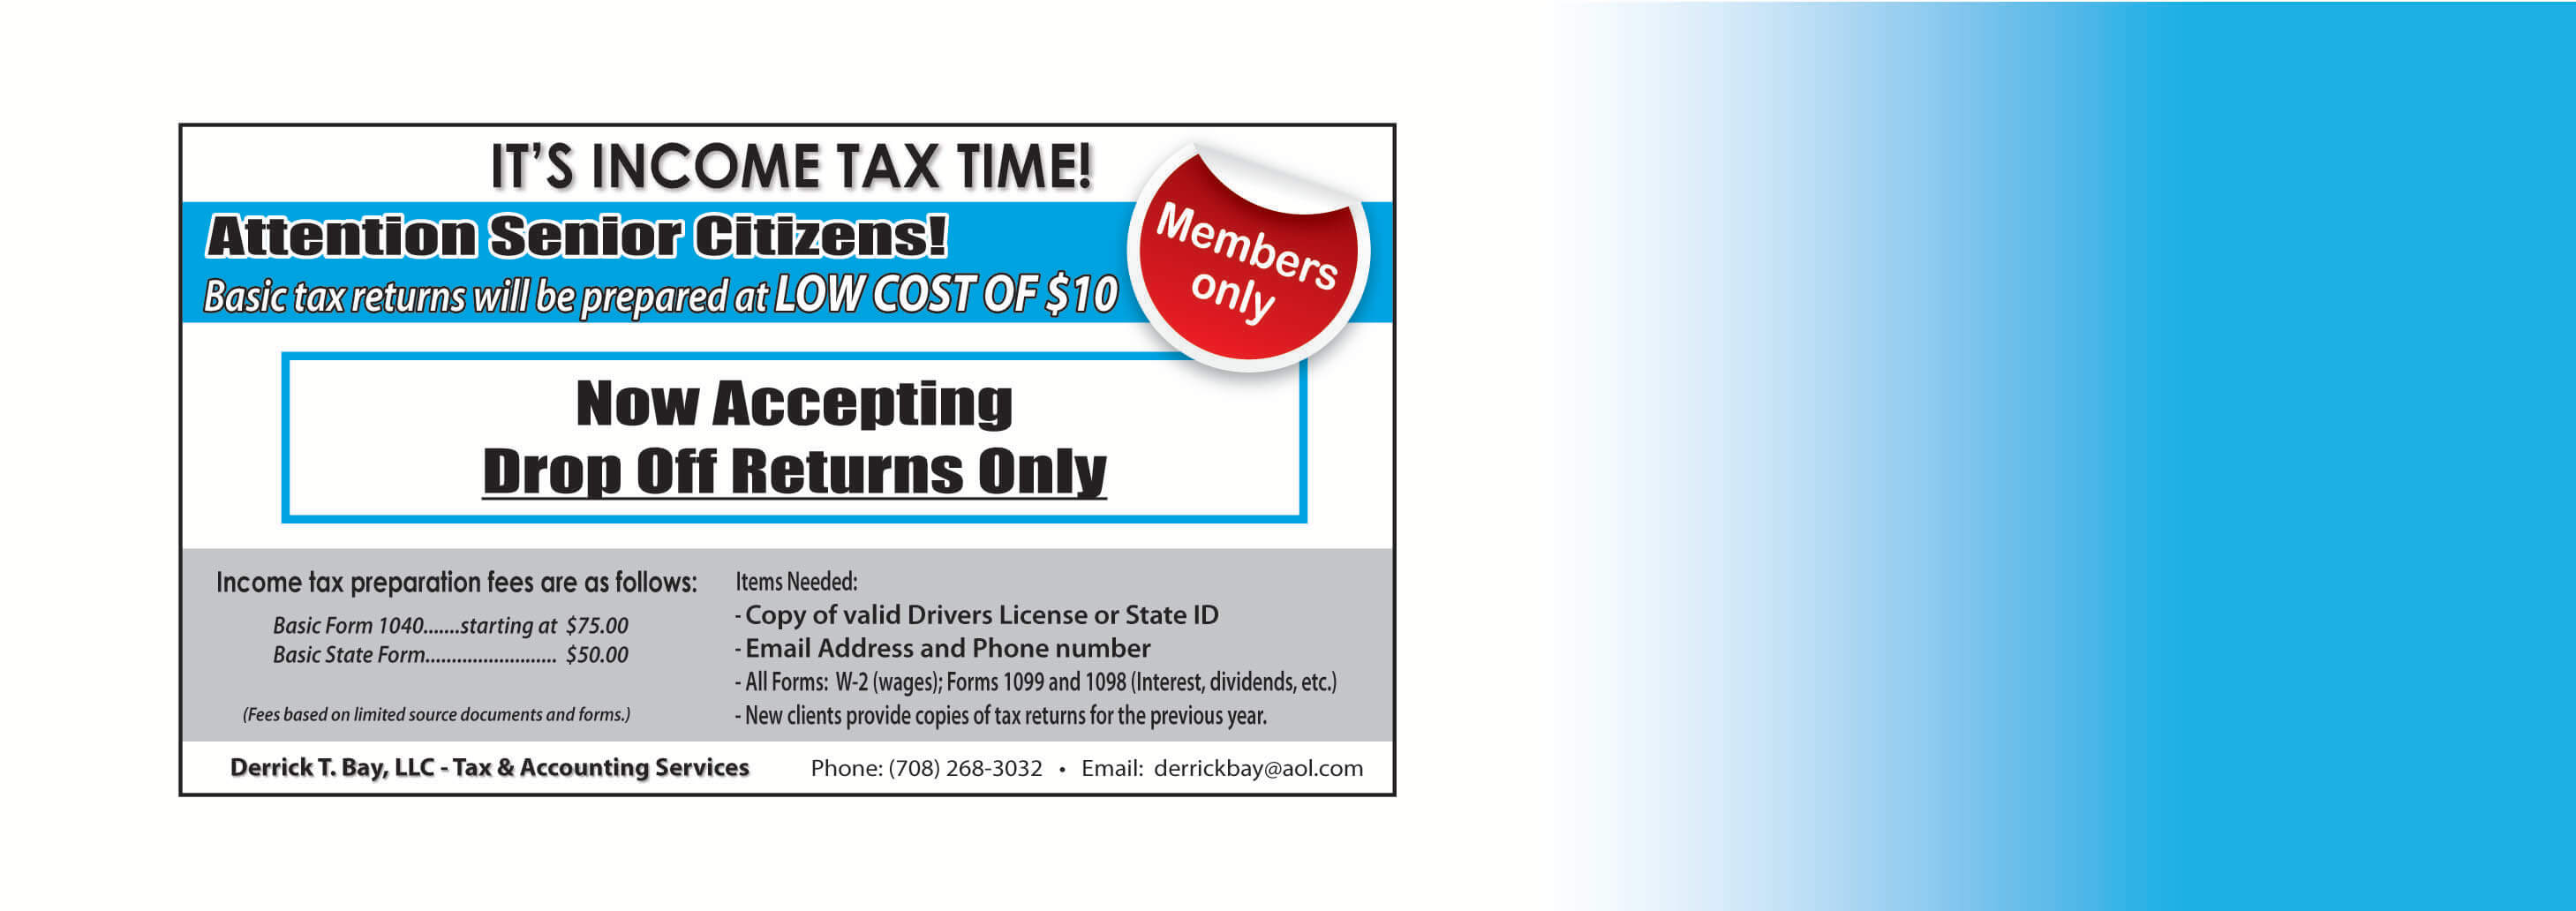 Income Tax Drop-off Returns Only